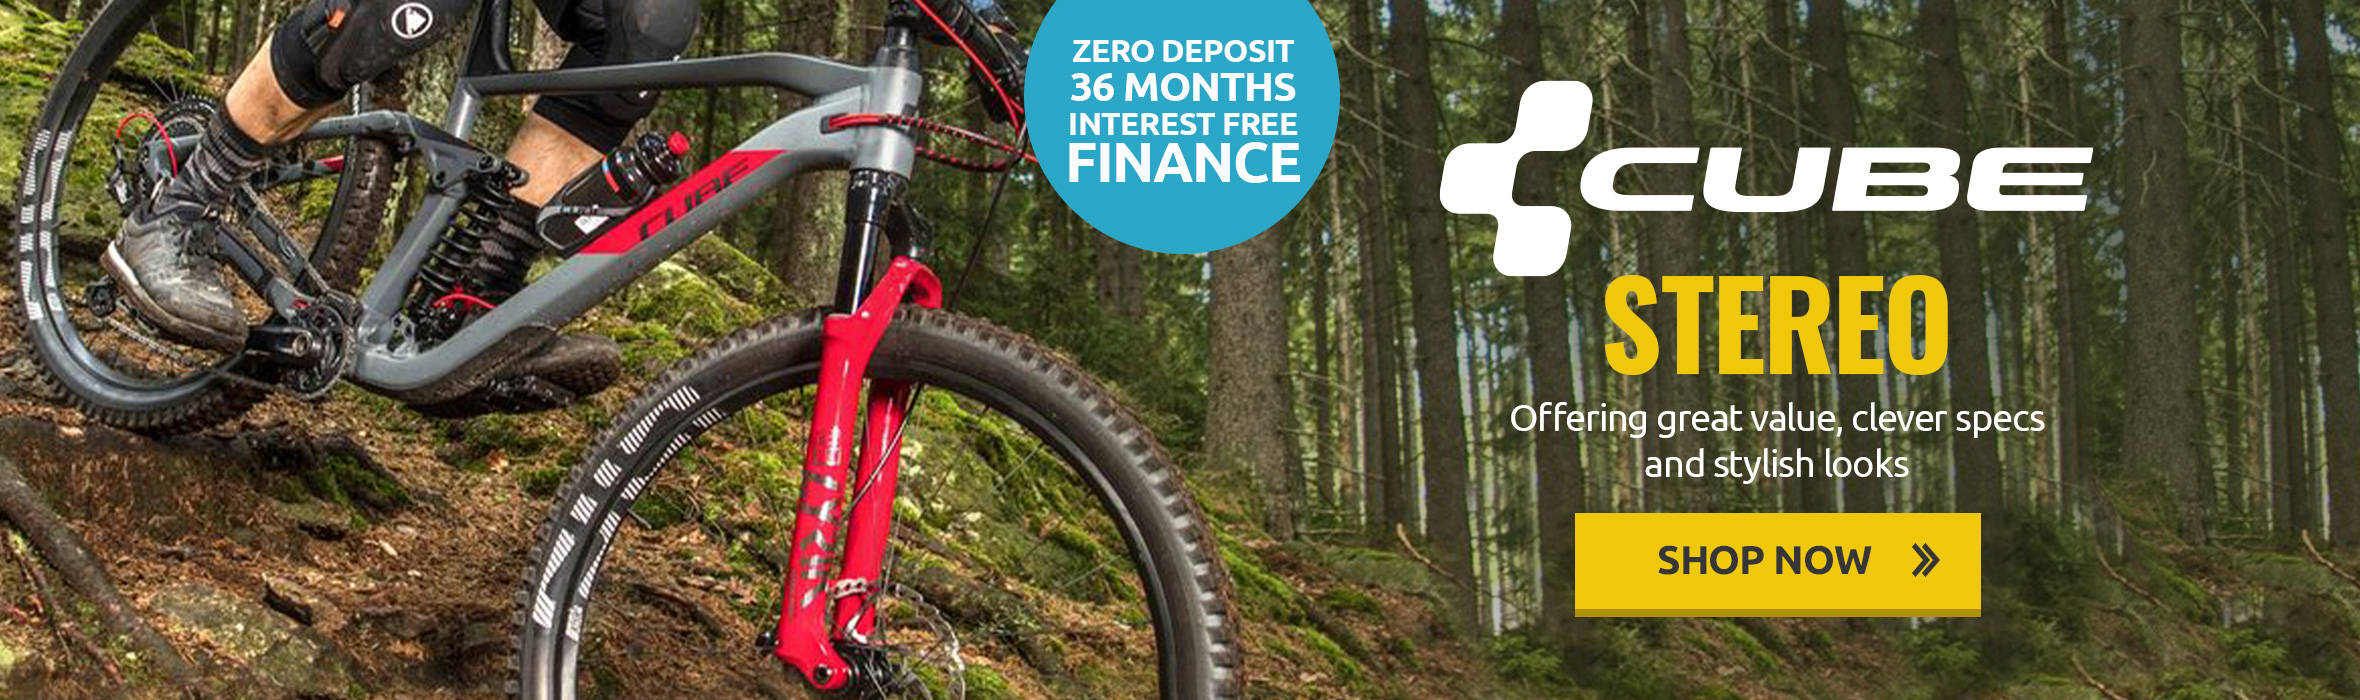 Cube Stereo - Zero Deposit, 36 Months Interest Free Finance on the Cube 2020 Range